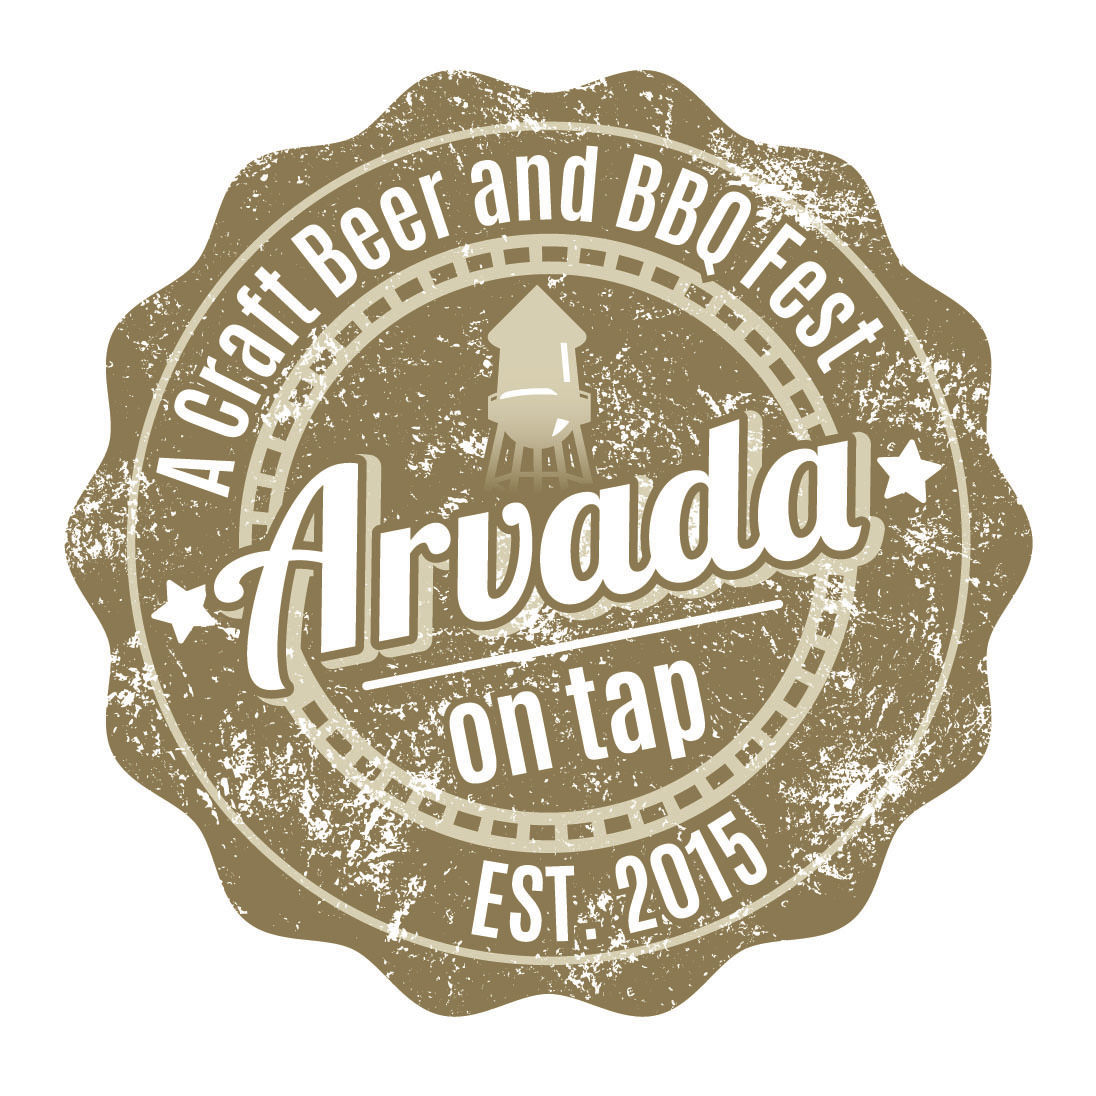 arvada on tap